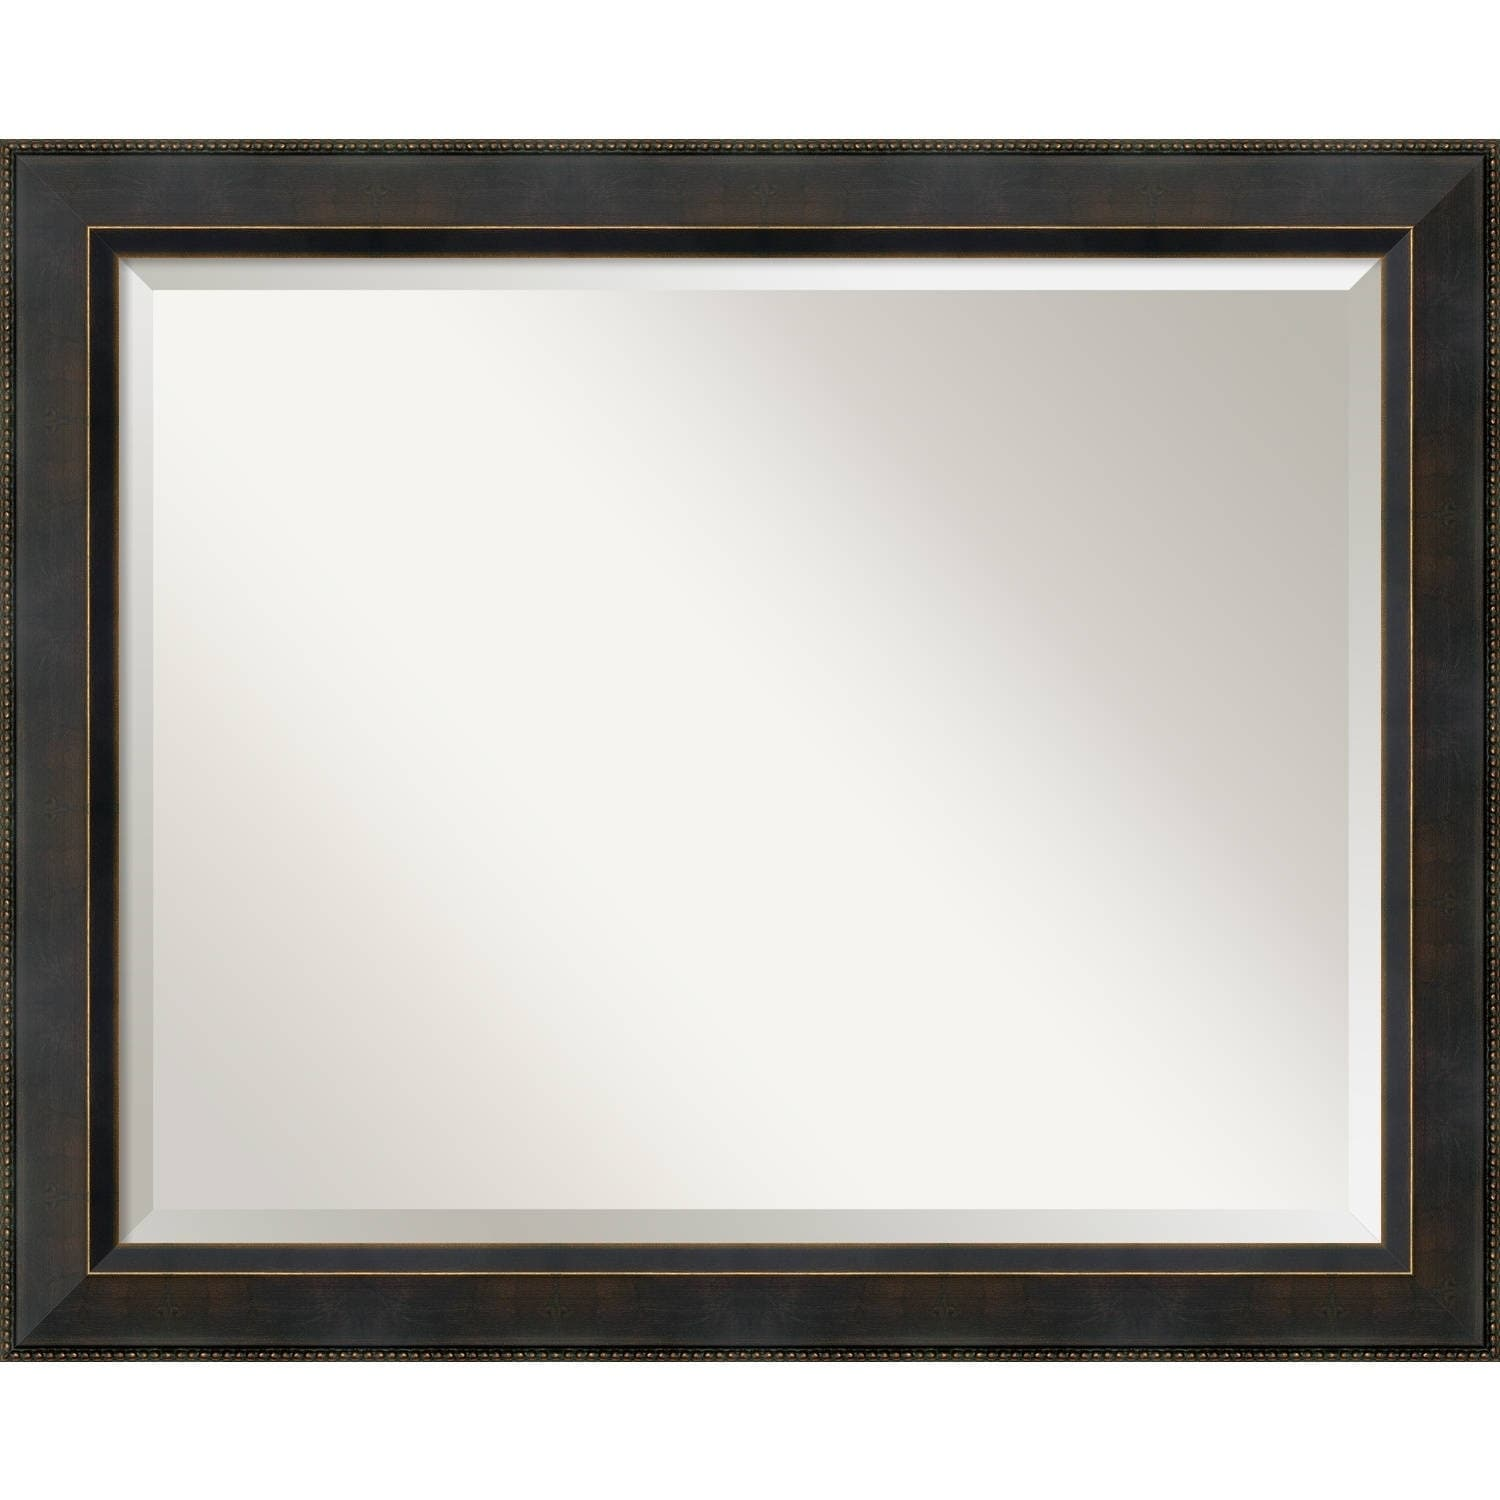 Bathroom Mirror Large, Signore Bronze 33 x 27-inch - Free Shipping ...